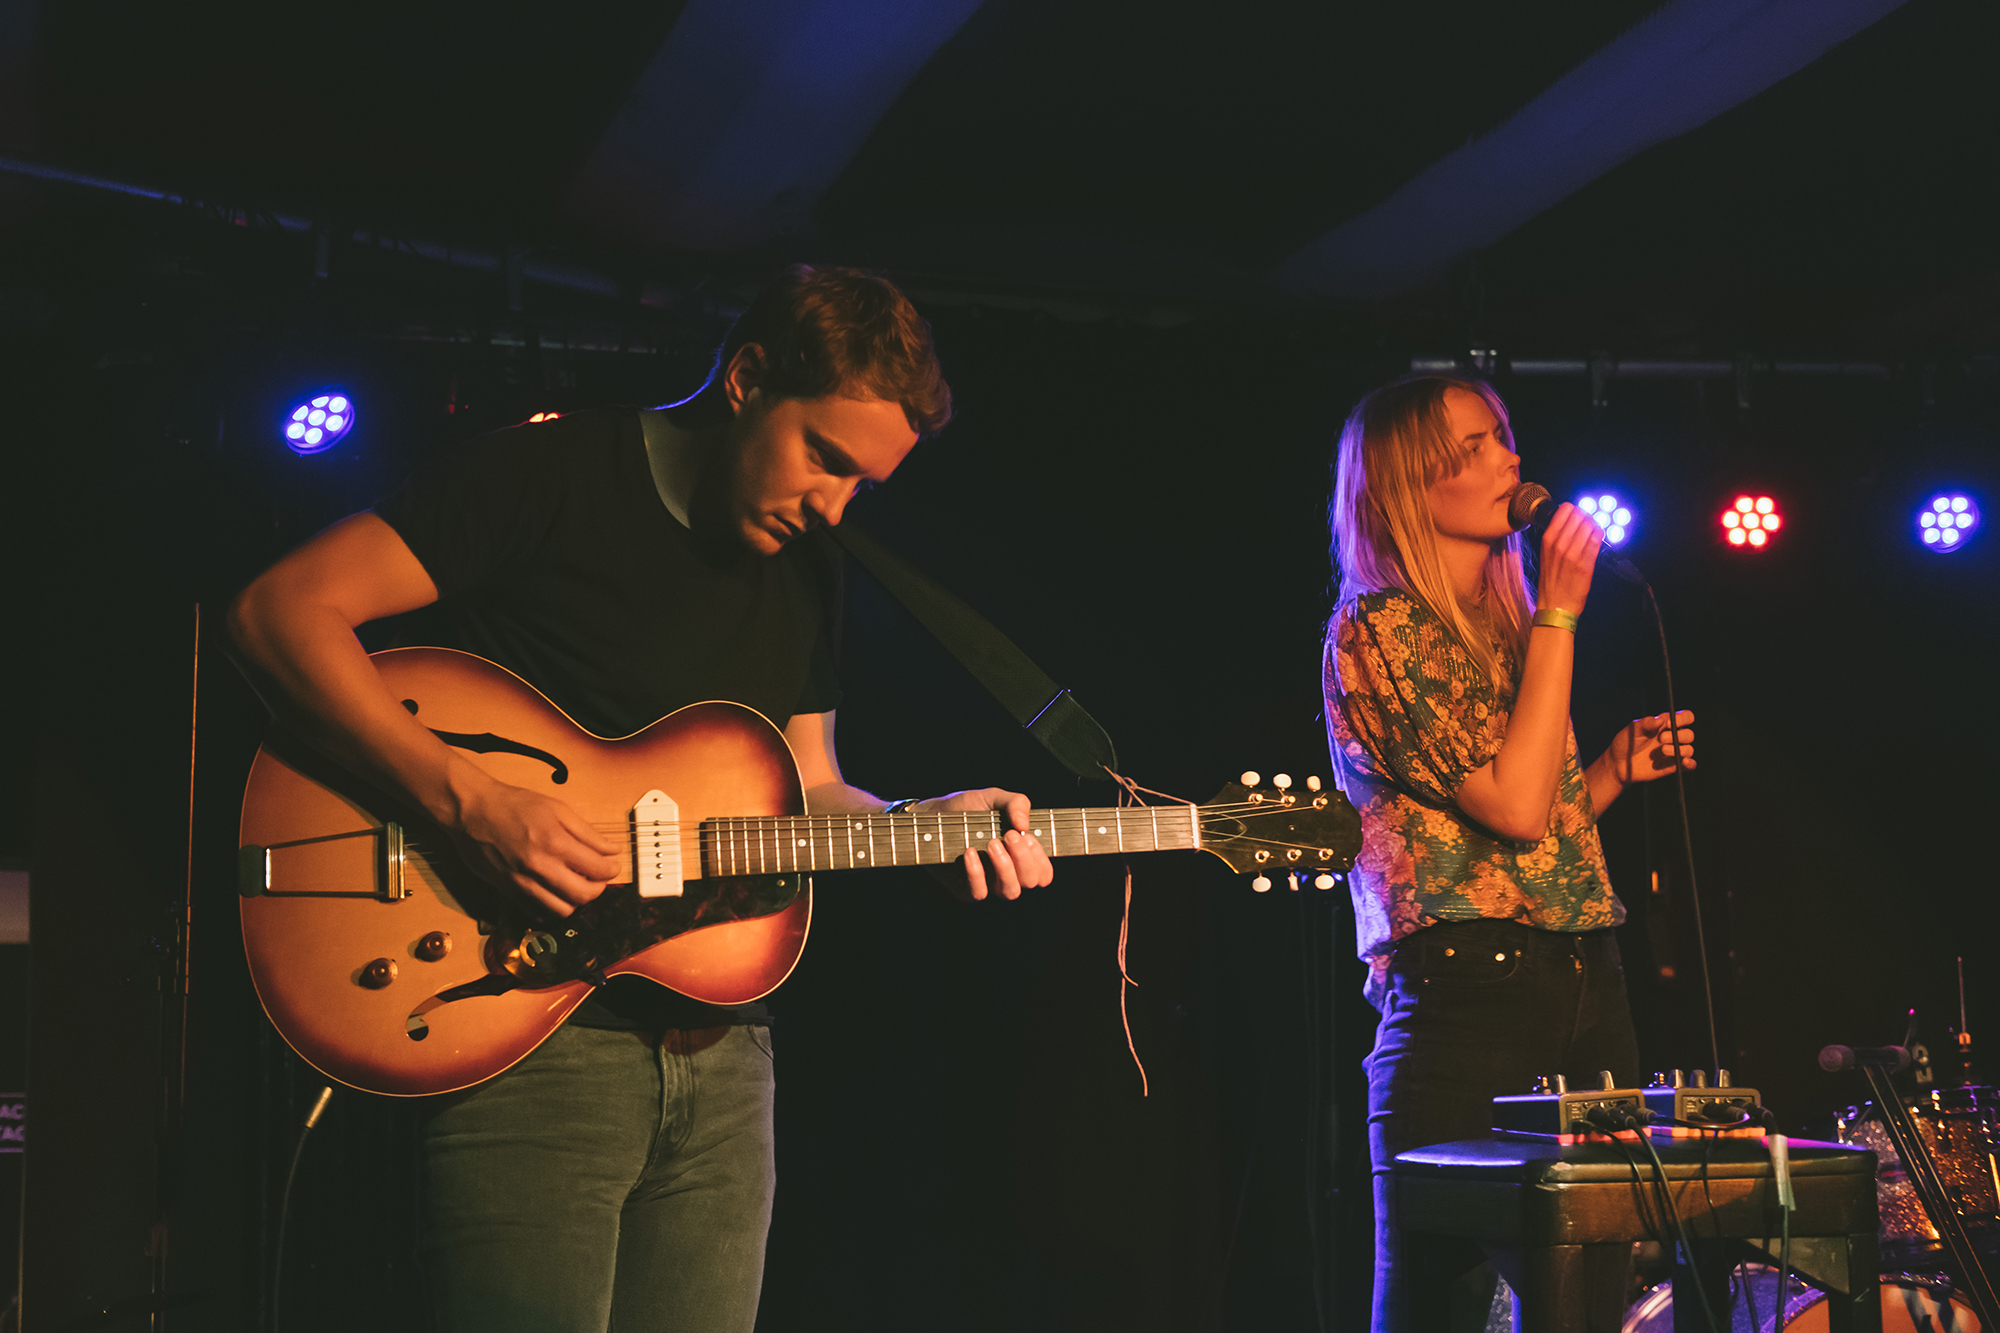 Gallery: Ja Ja Ja Berlin with The Holy, Tuvaband + Wangel